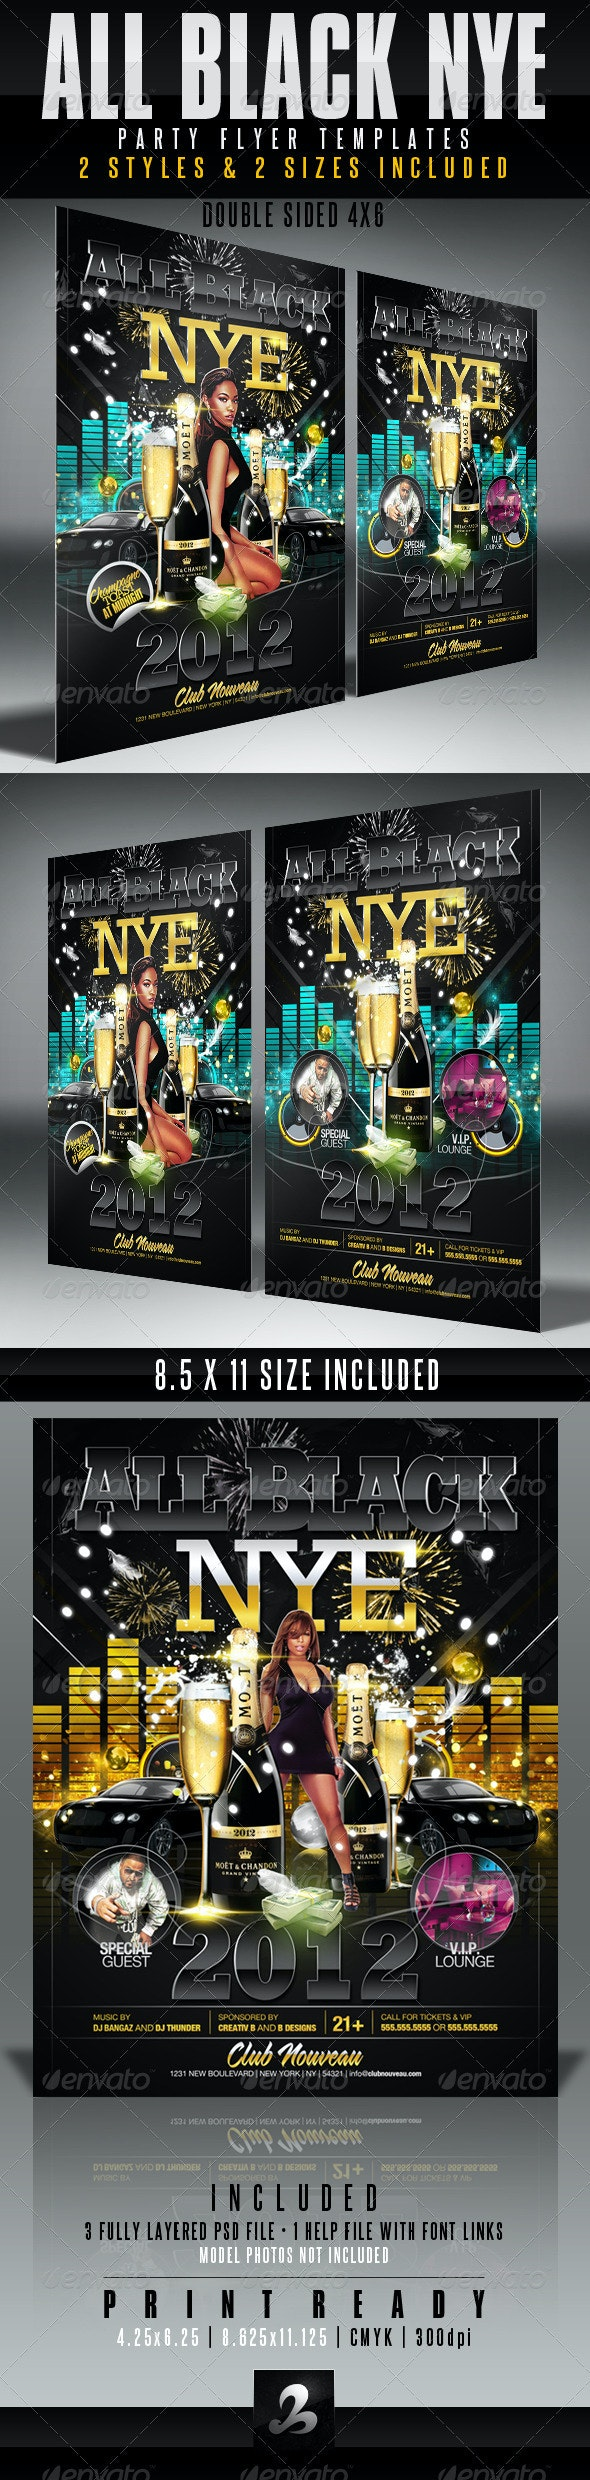 All Black NYE Flyer Templates - Clubs & Parties Events